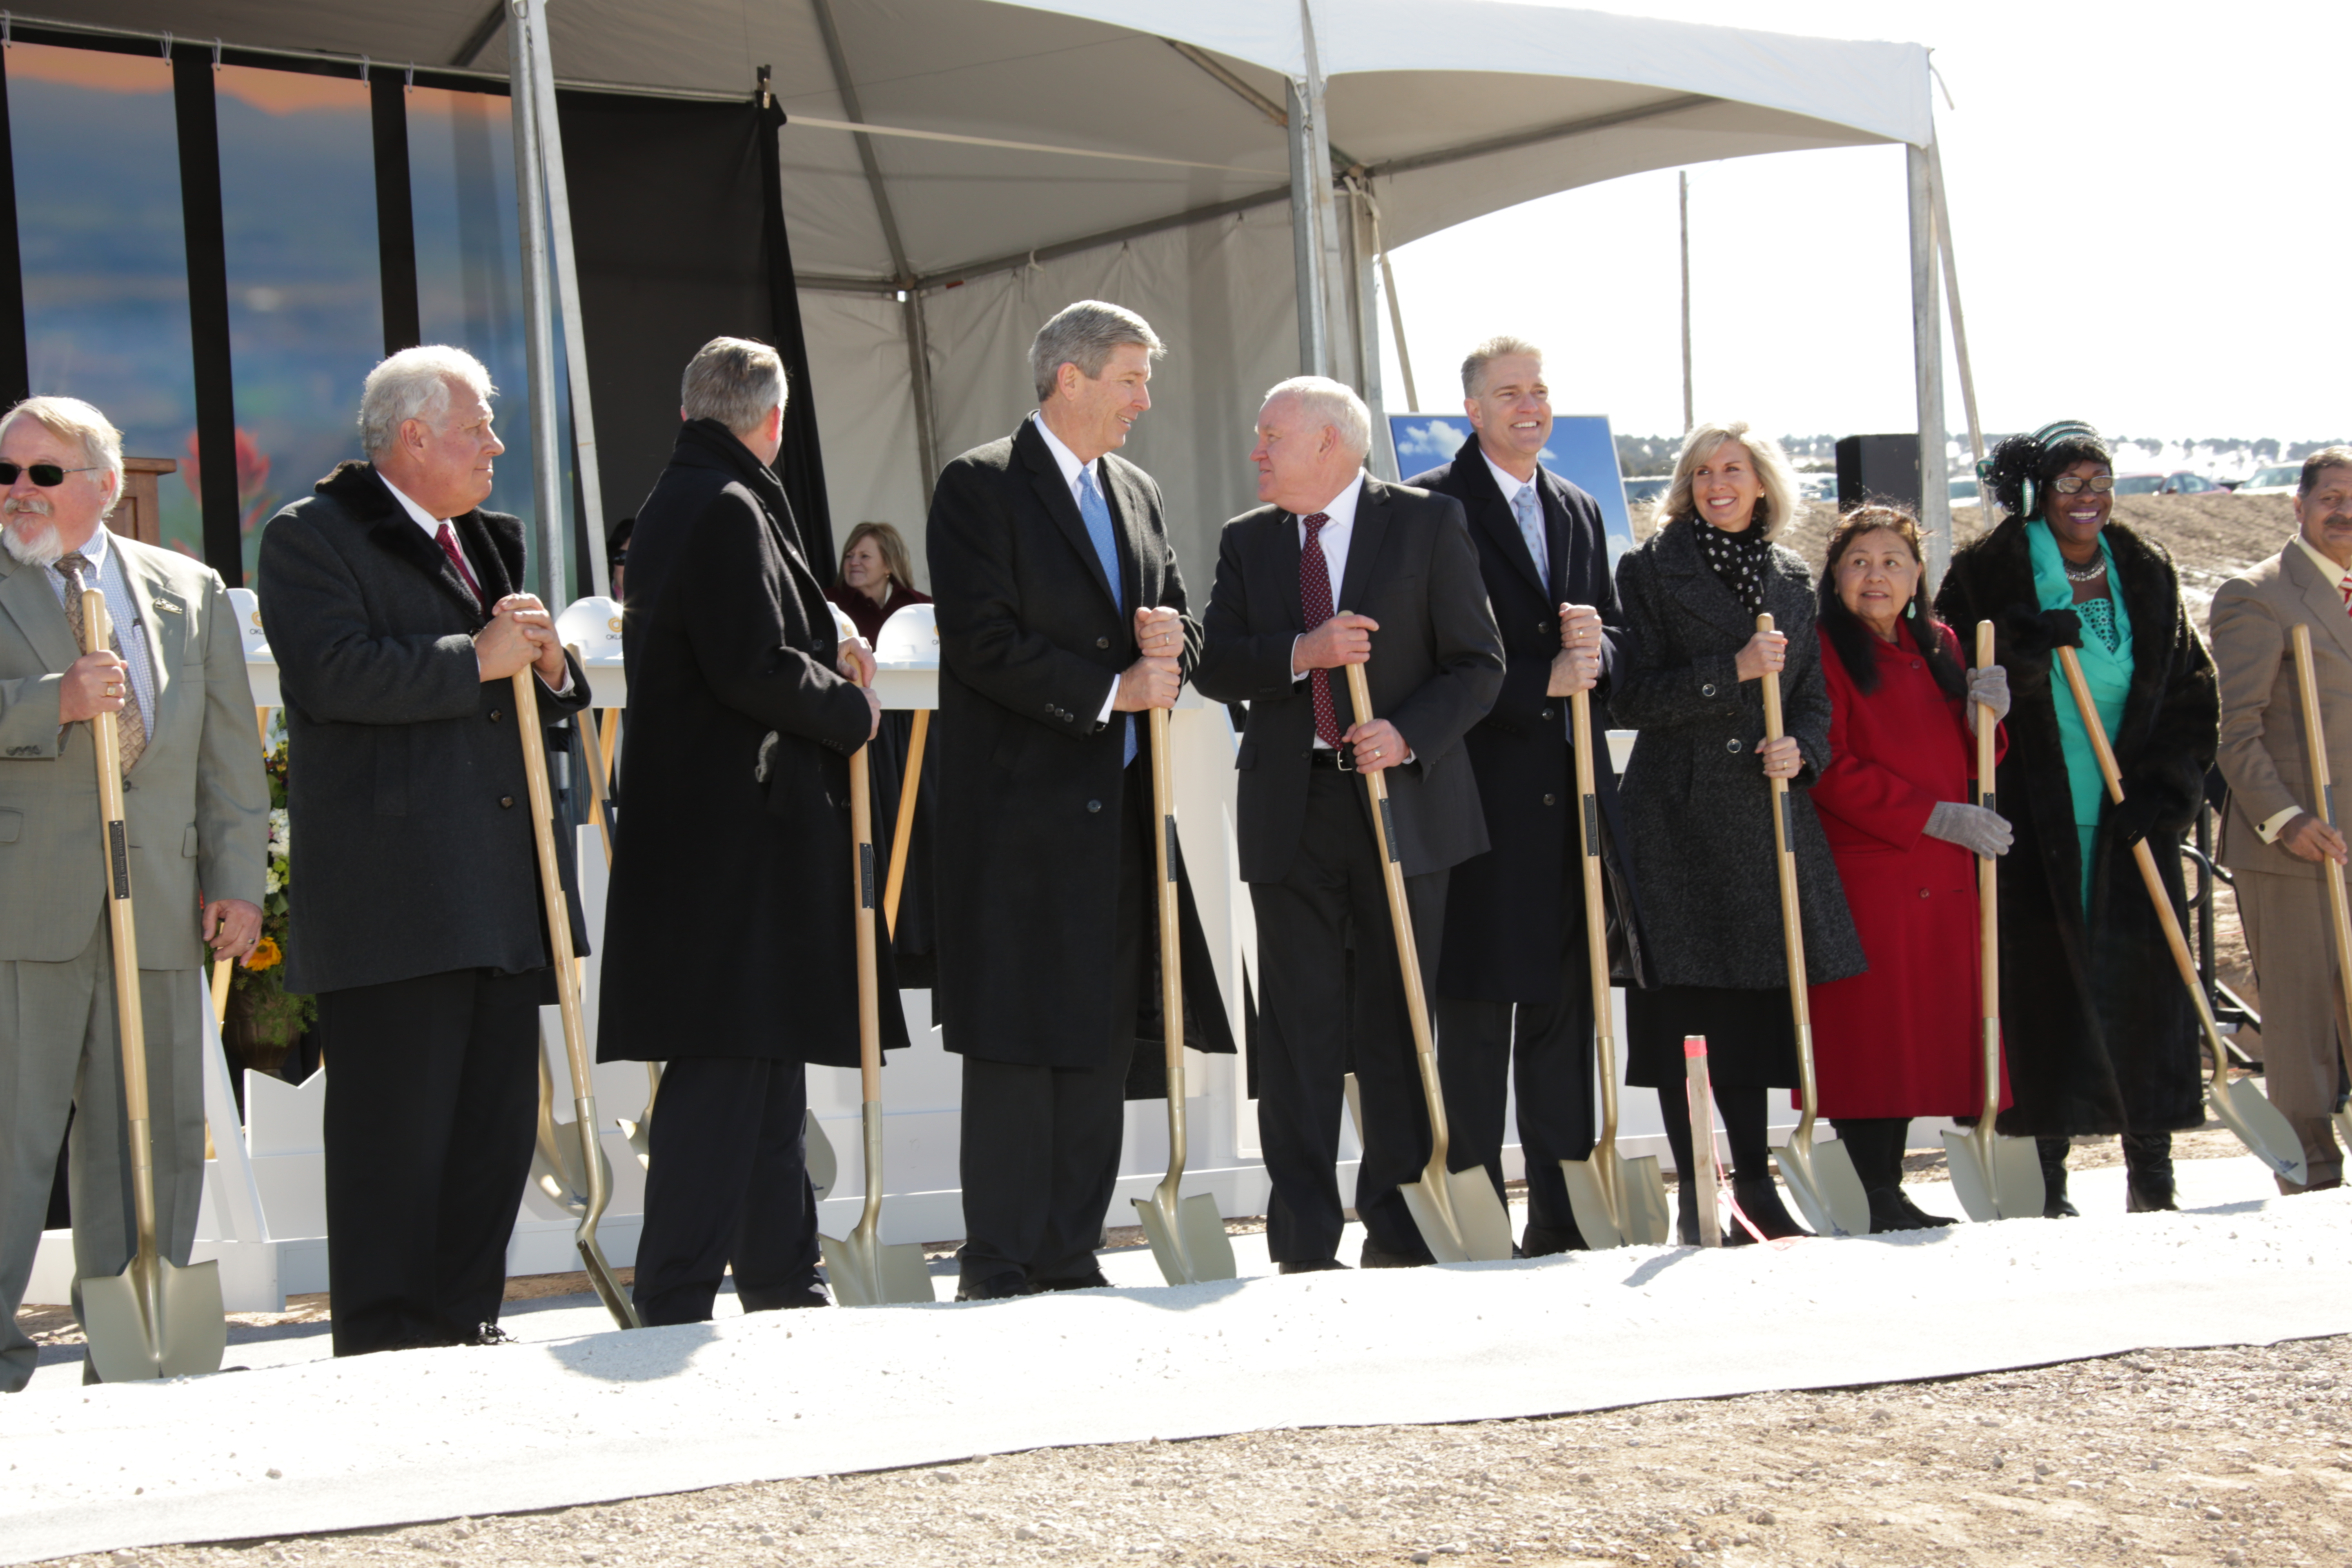 The Idaho Area Presidency — Elder Wilford W. Andersen, Elder S. Gifford Nielsen and Elder Brian K. Taylor — are joined at the ceremonial groundbreaking event for the future Pocatello Idaho Temple by representatives of the Pocatello-area religious community. Manning shovels were Jewish and Muslim leaders, along with clergy from several Christian congregations.,